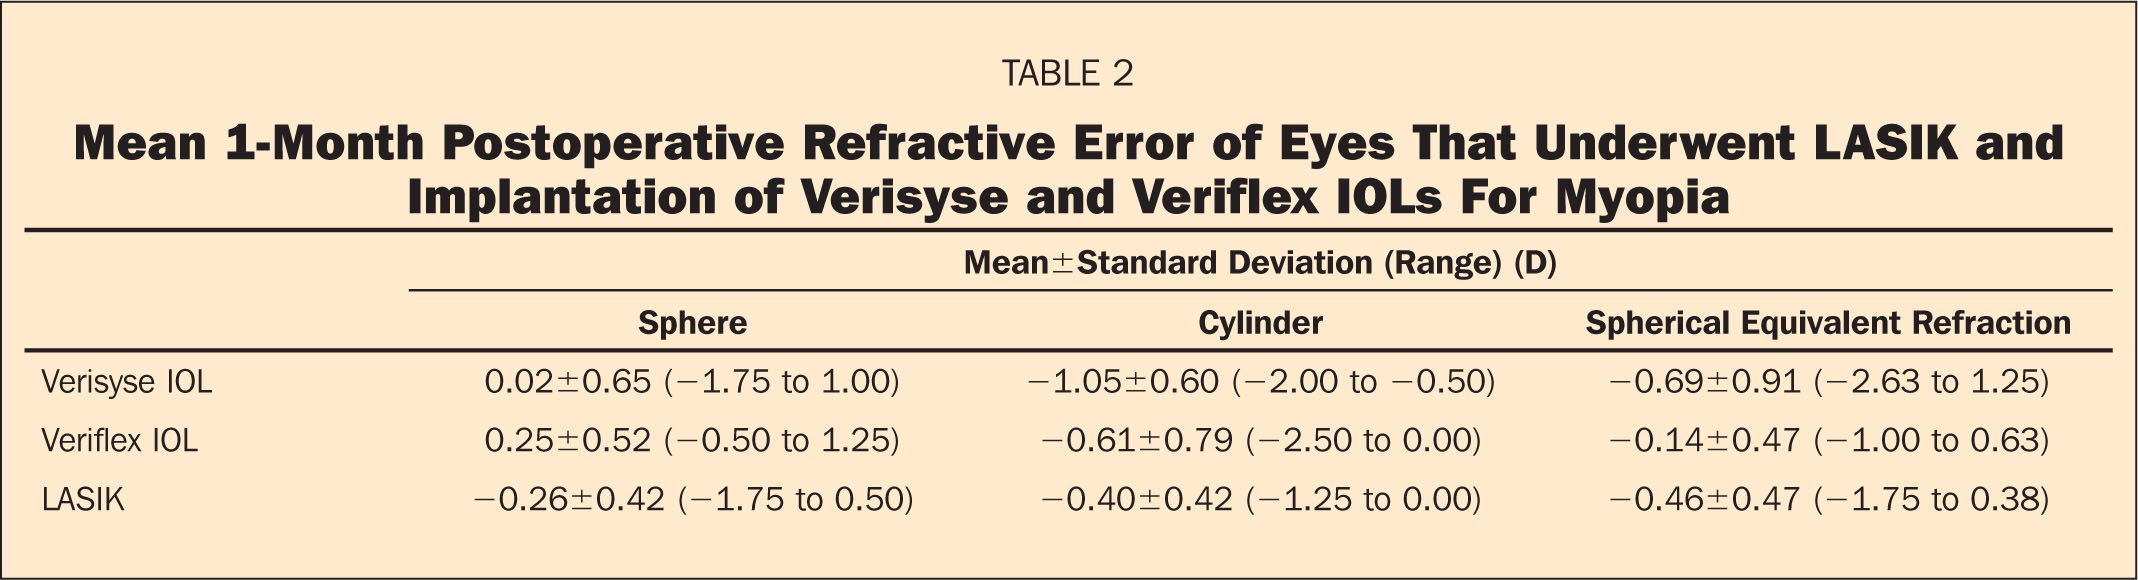 Mean 1-Month Postoperative Refractive Error of Eyes that Underwent LASIK and Implantation of Verisyse and Veriflex IOLs for Myopia